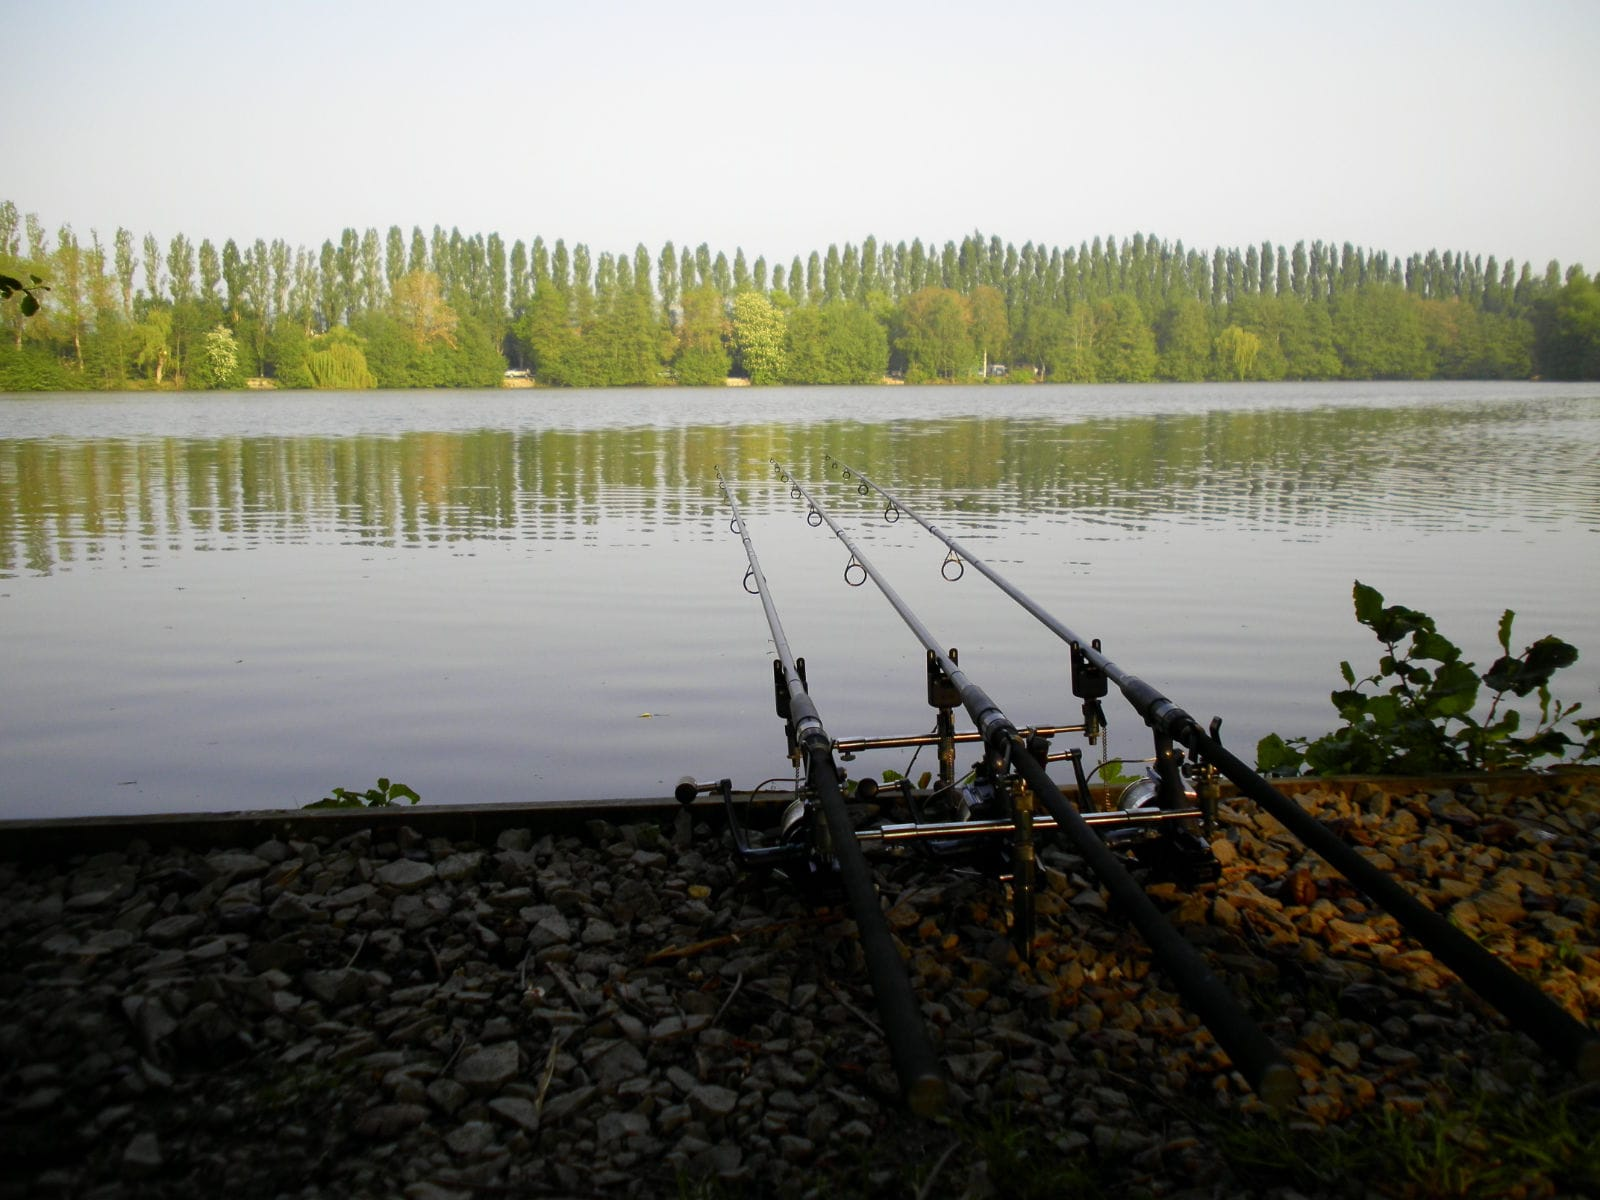 Carpfishing widescreen wallpapers